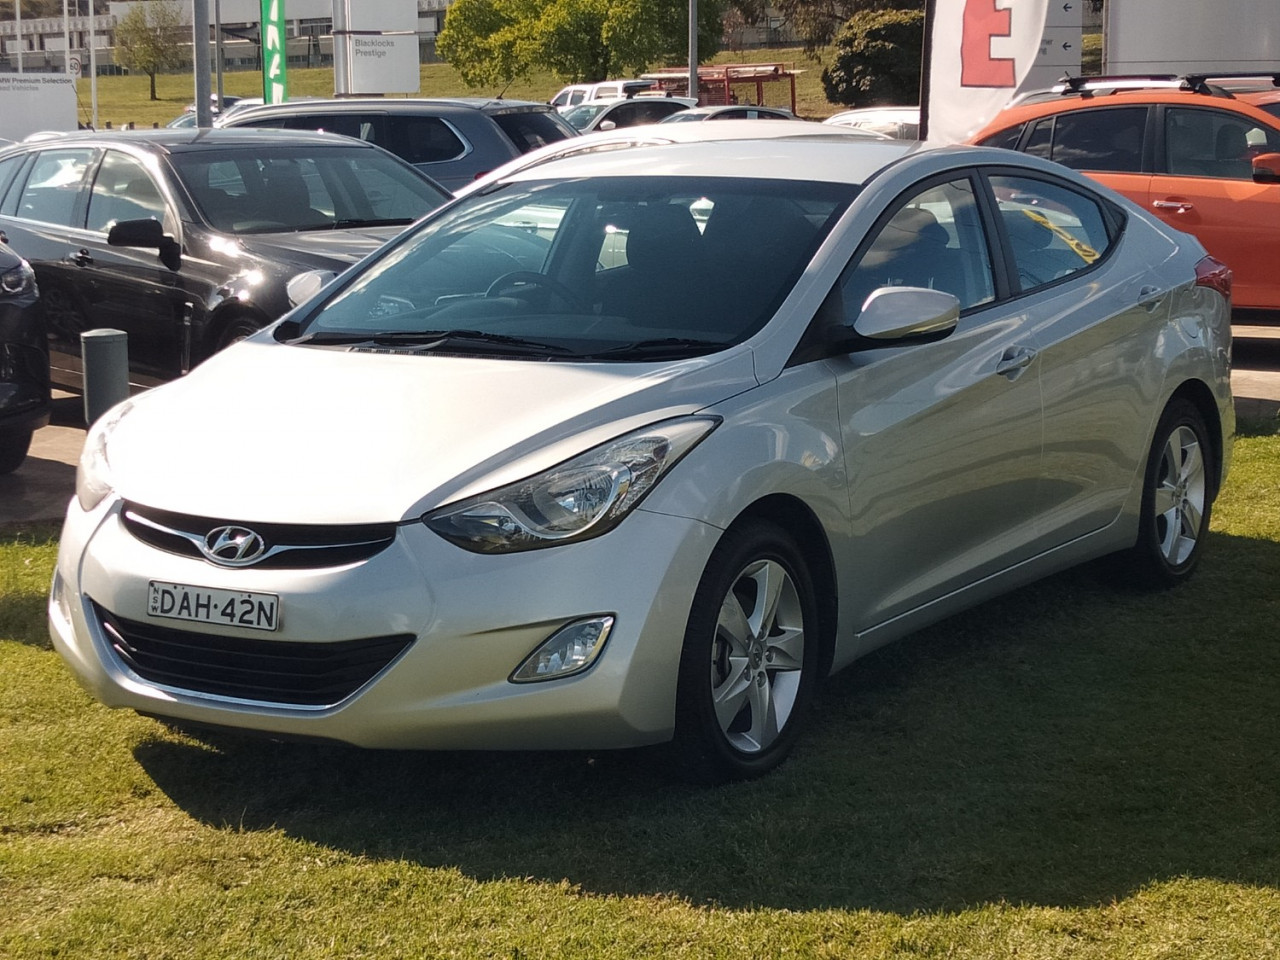 2013 Hyundai Elantra MD2 ELITE Sedan Image 1